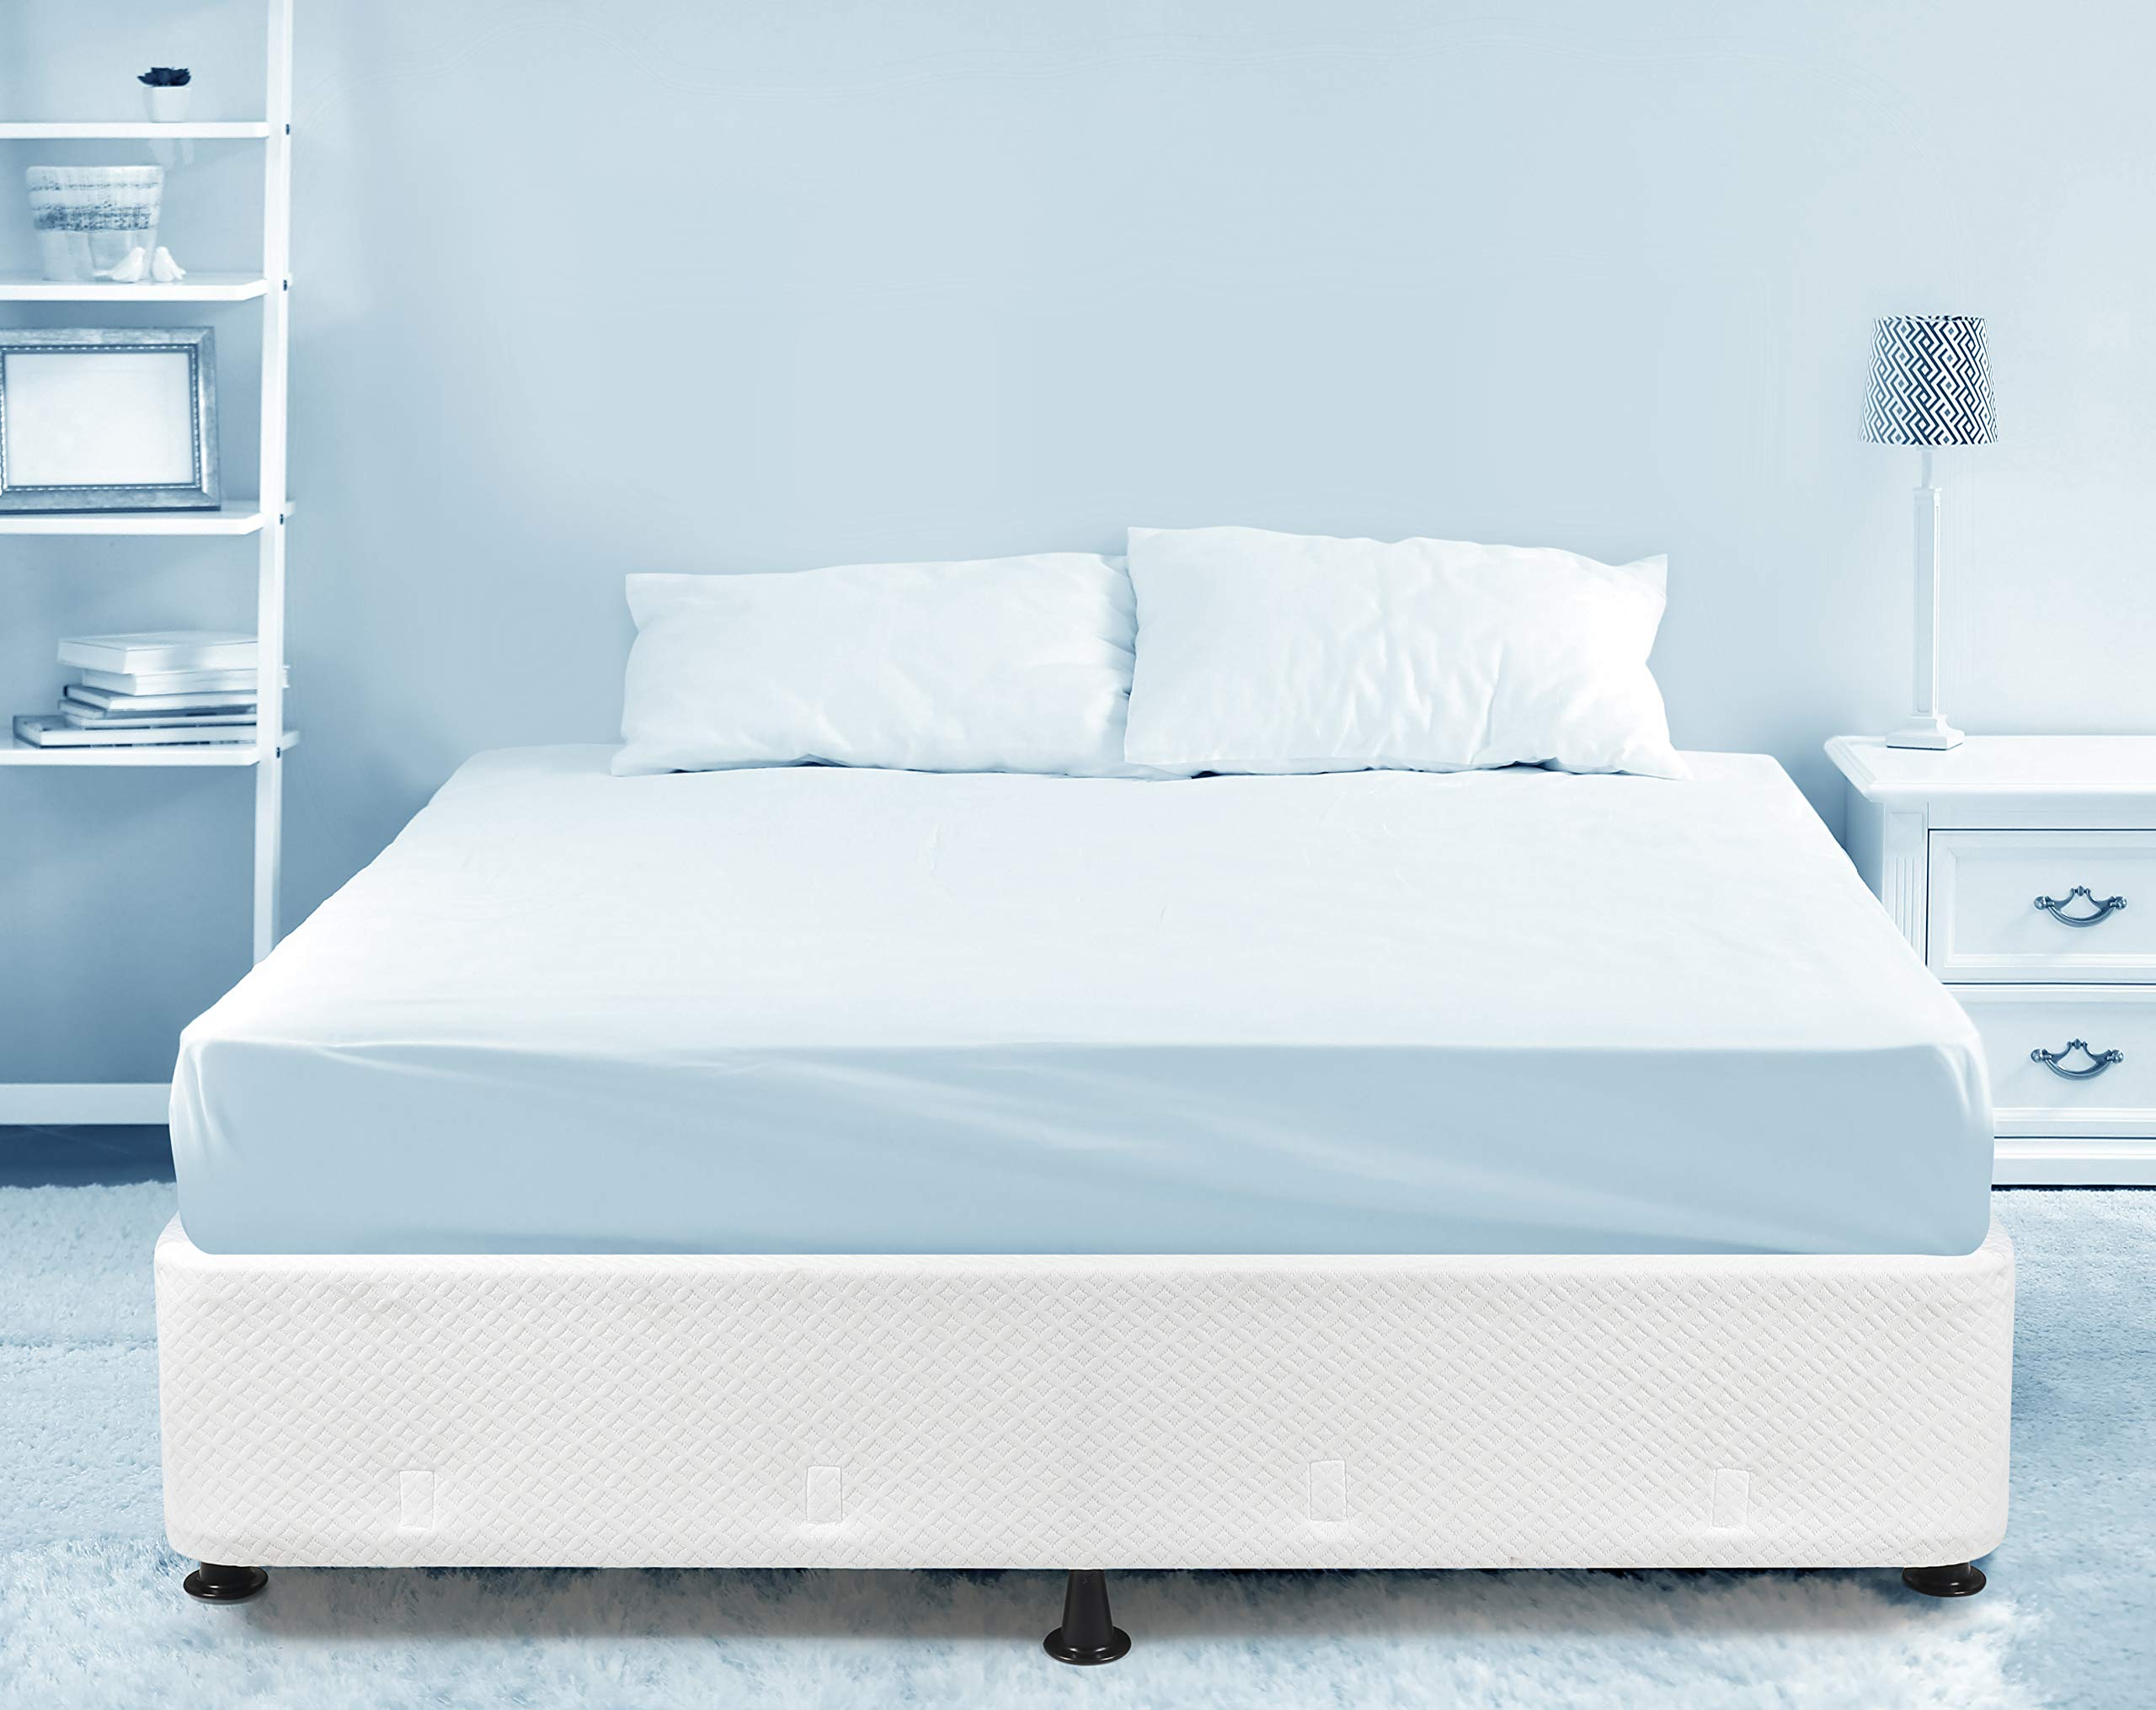 Milliard Box Spring Frame Queen Size High Profile Mattress Foundation Metal Structure, Use with or Without Included Legs or Directly on Bed Frame - Queen by Milliard